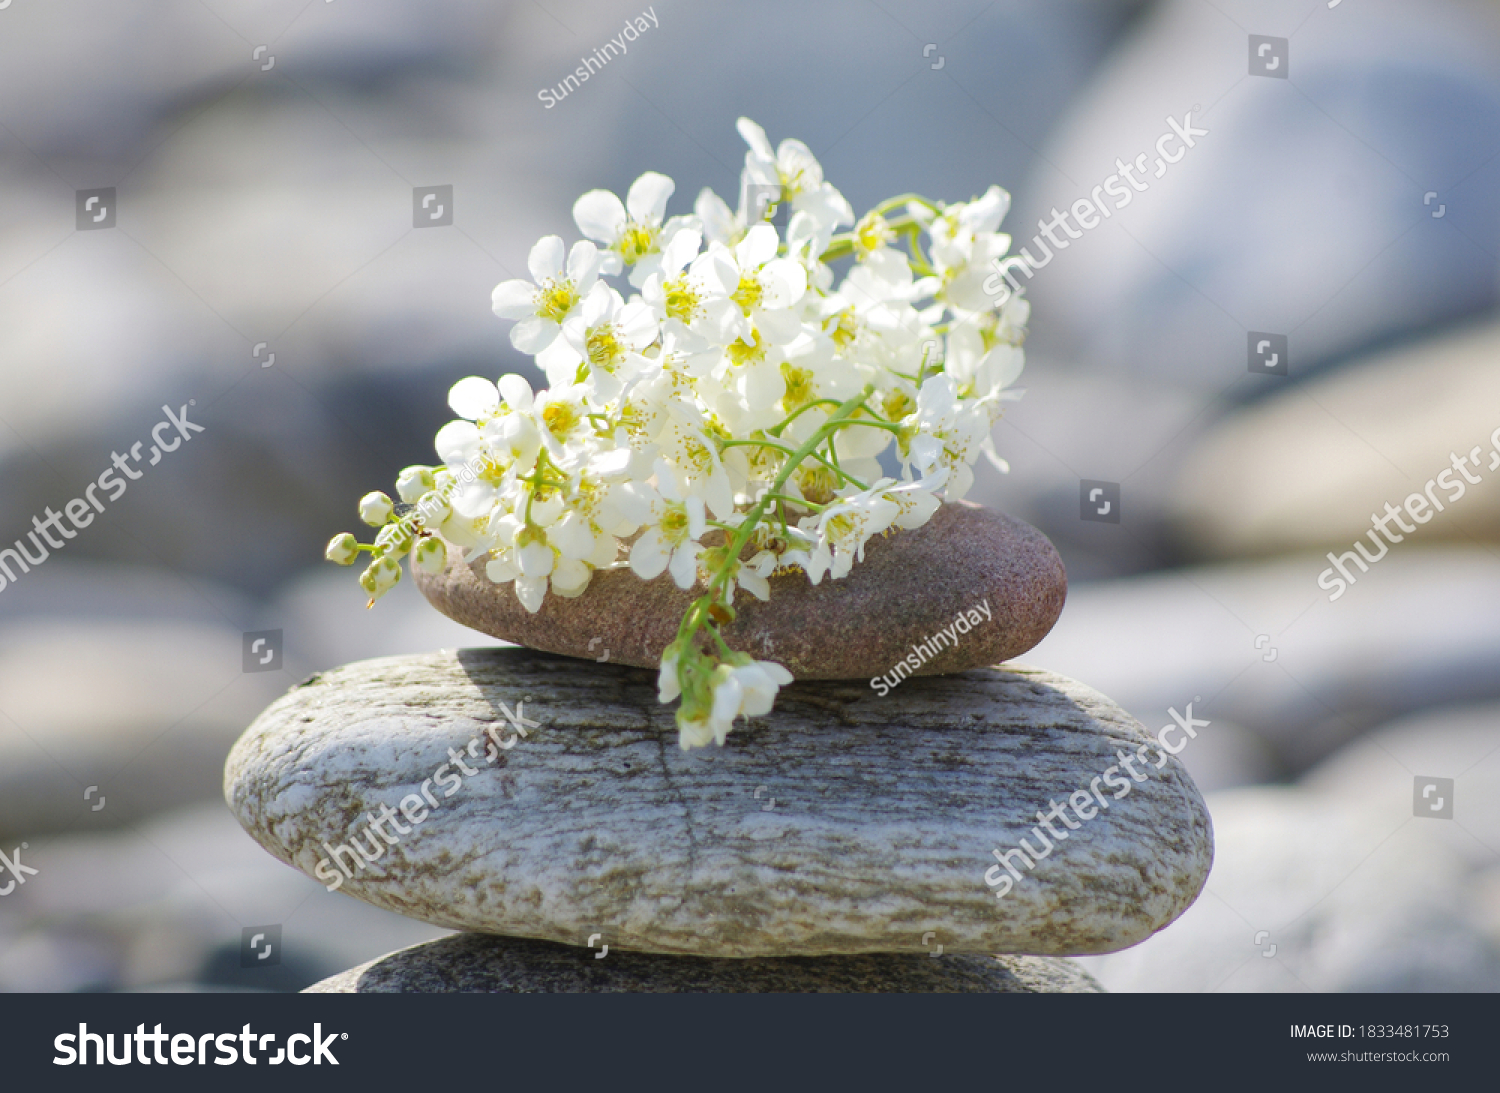 Pile of stones with flowers in the sun